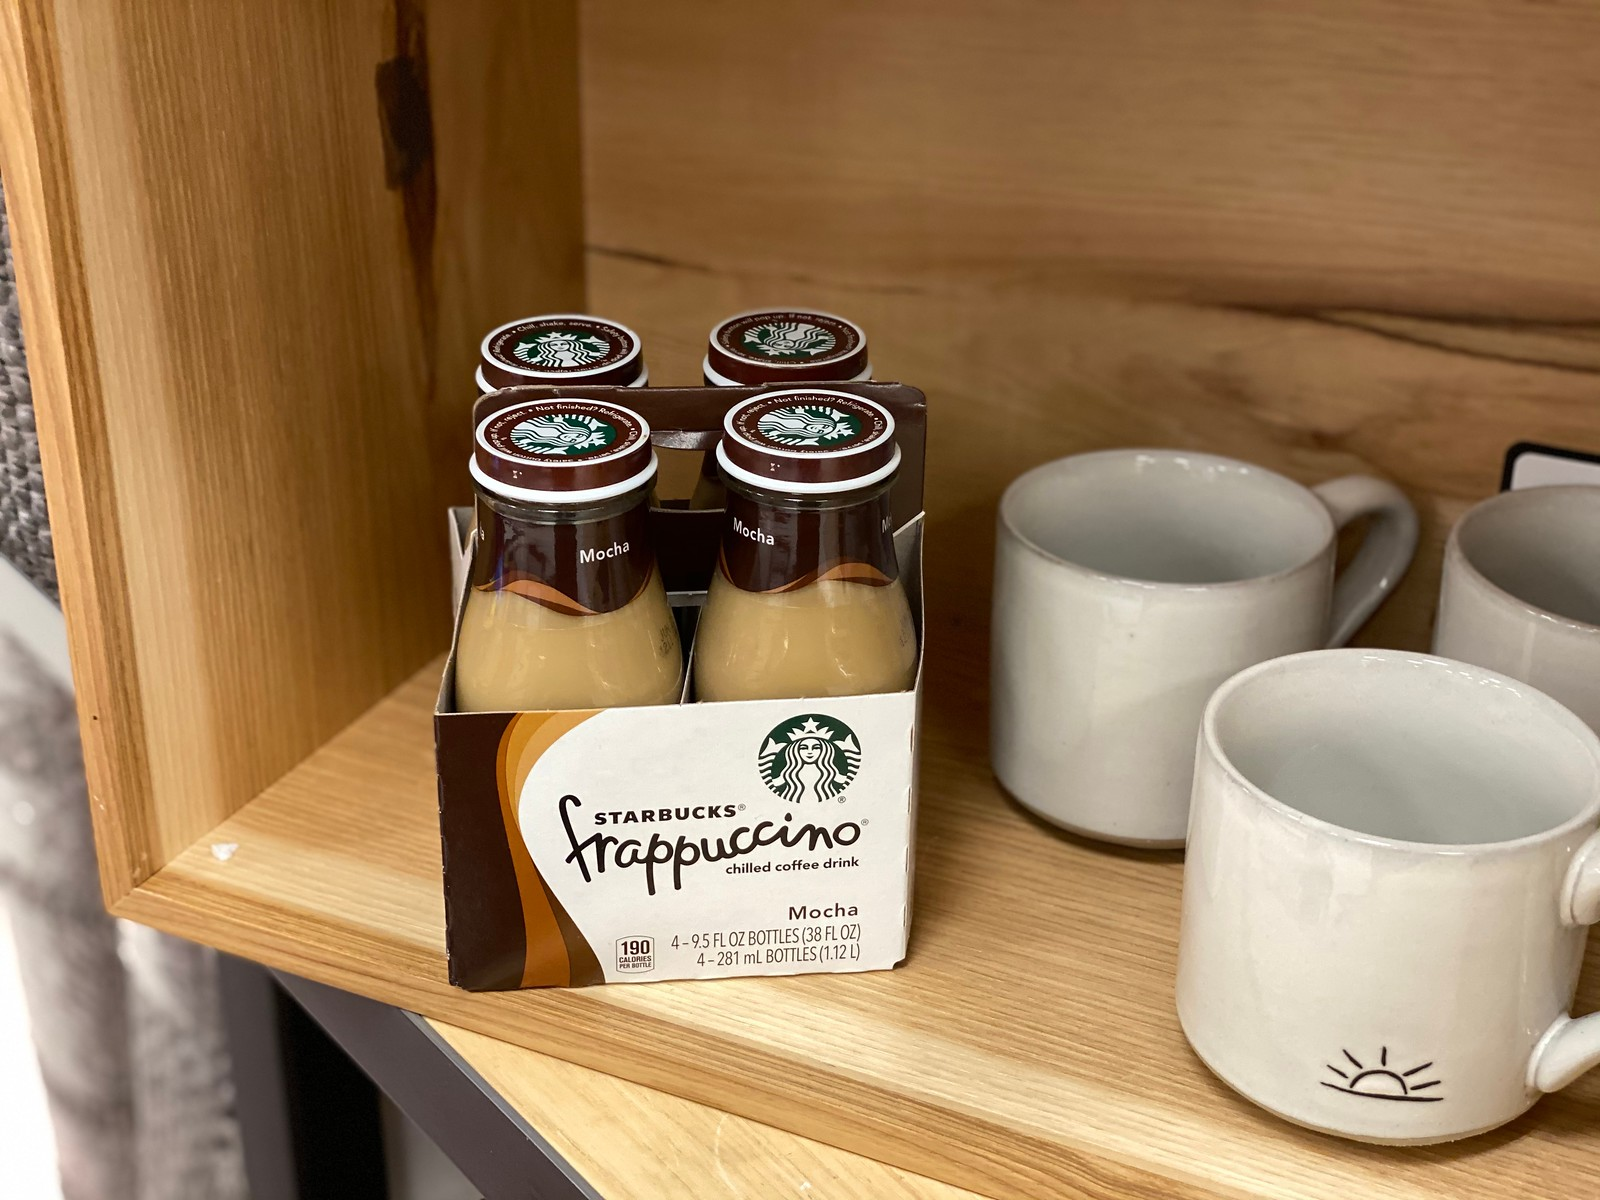 Starbucks Frappuccino on store shelf next to coffee cup